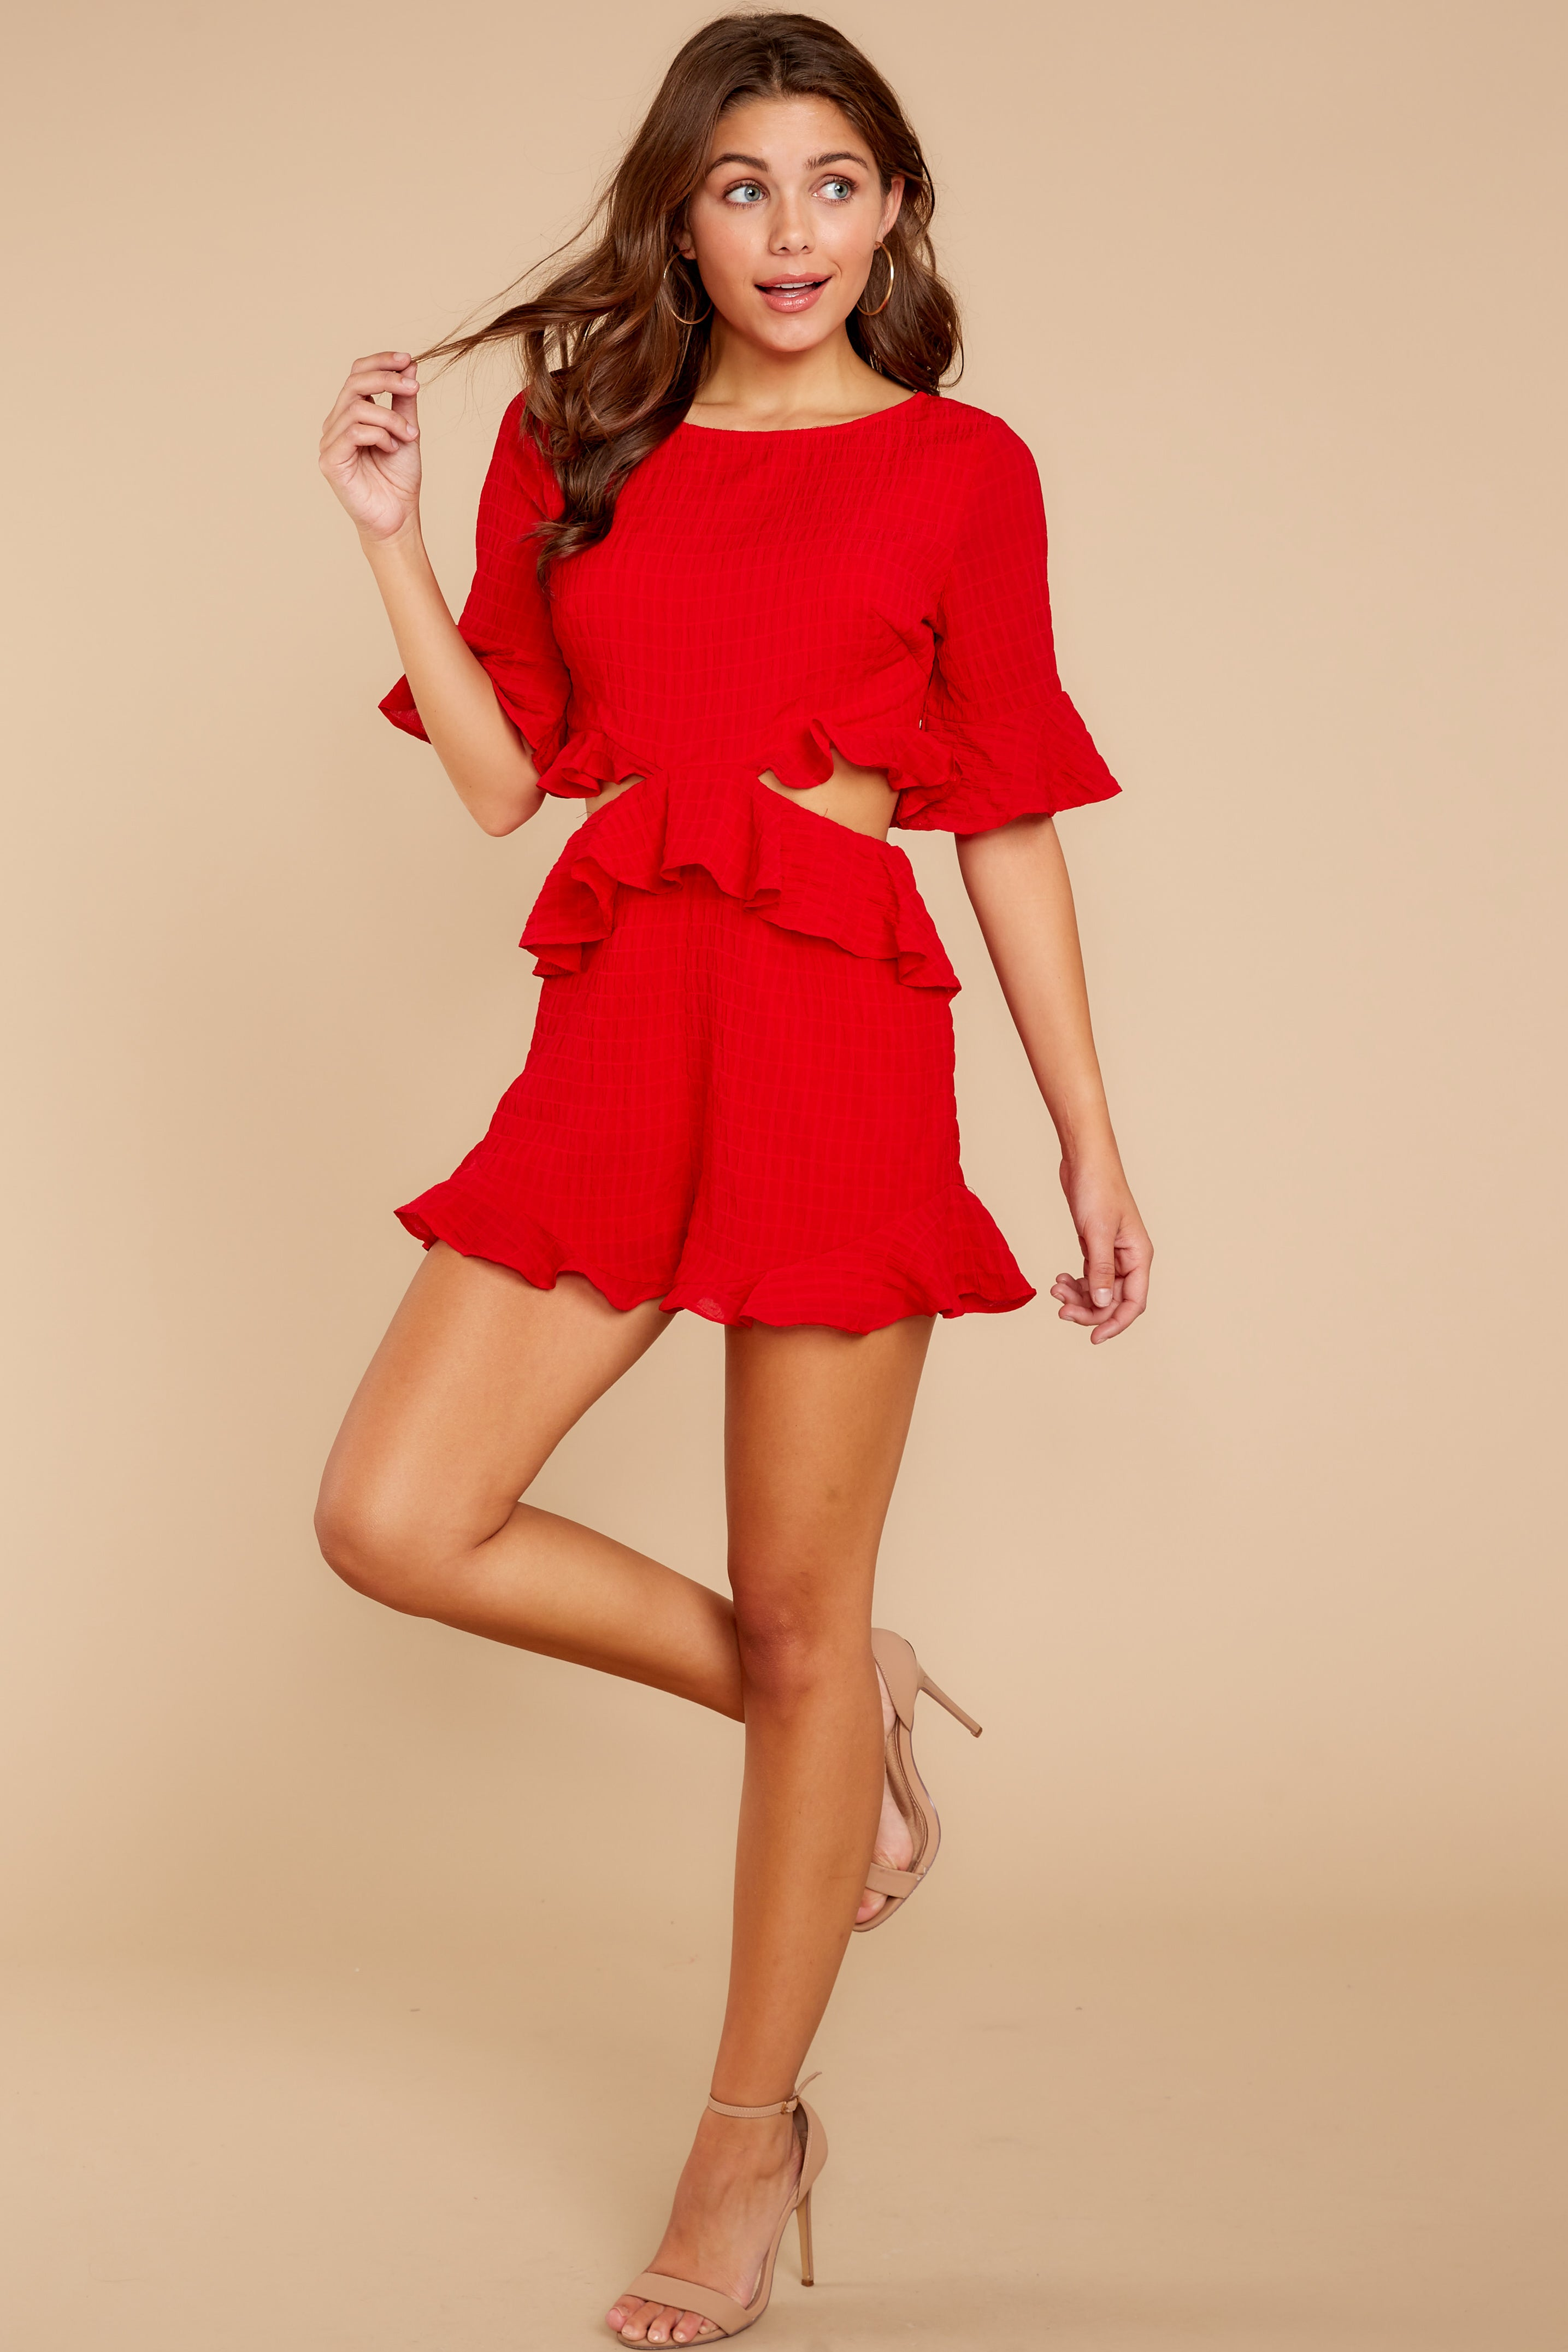 298edda2fc8a Flirty Red Romper - Trendy Short Ruffled Romper - Playsuit -  48.00 ...